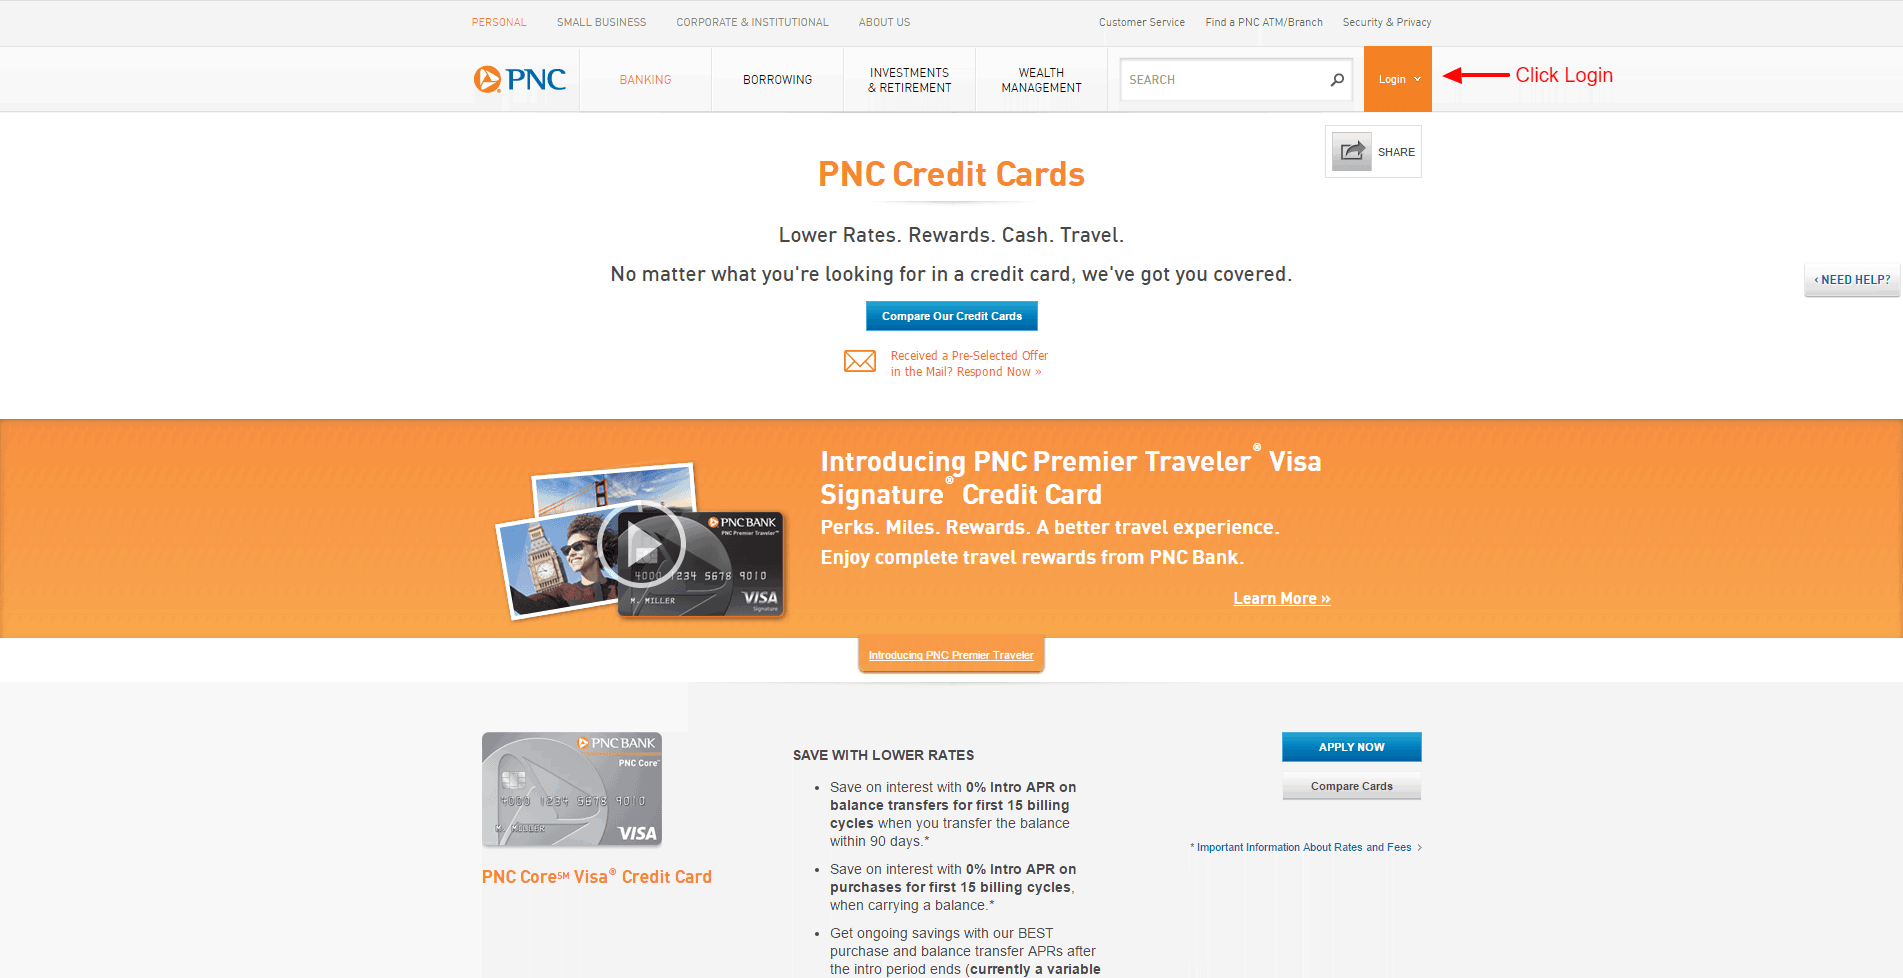 PNC Credit Card Online login - 🌎 CC Bank